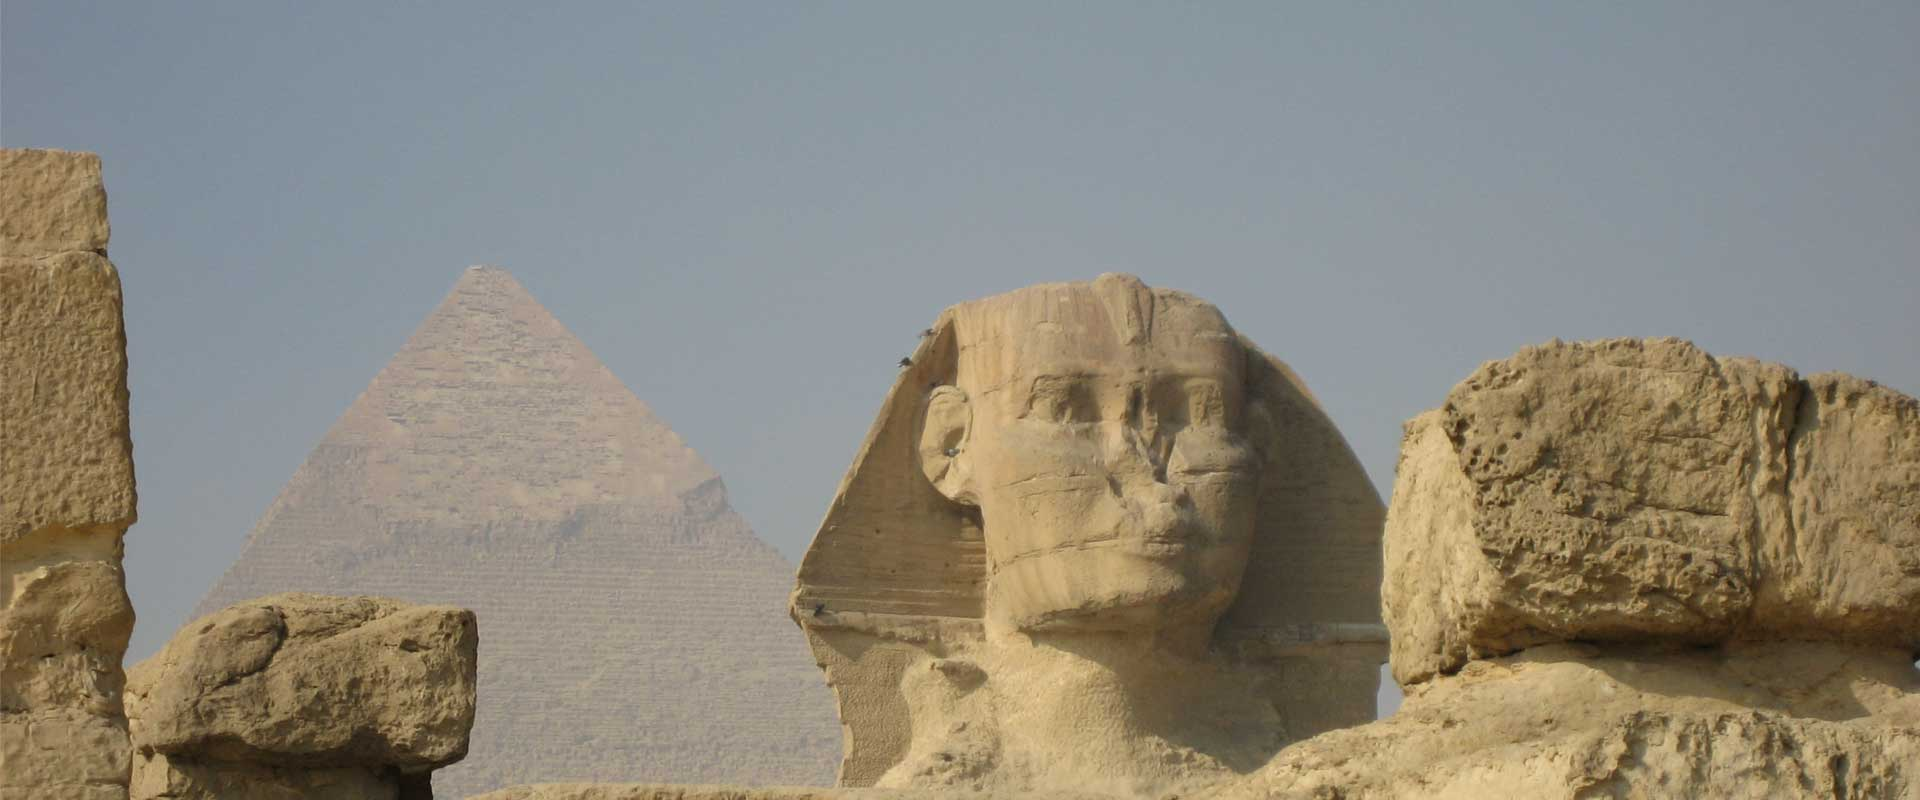 Private excursion: The Great Giza pyramids and Sphinx day trip from Cairo